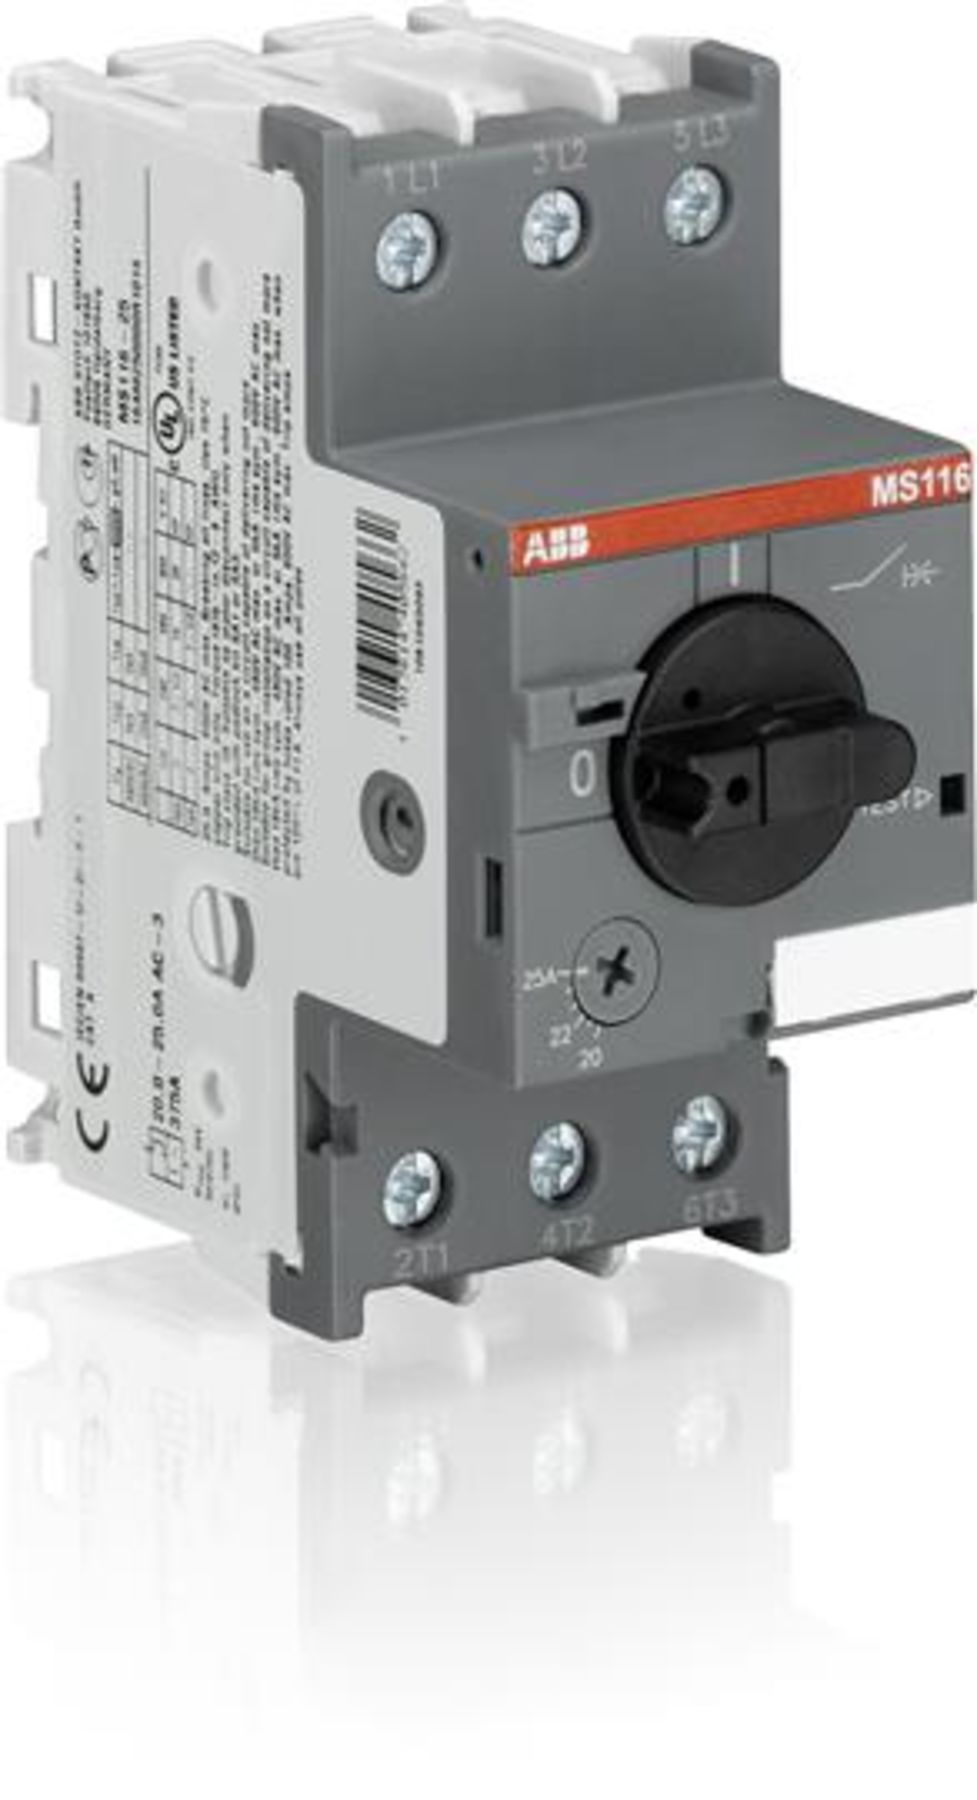 Ms116 63 Manual Motor Starter 1sam250000r1009 In Stock And Ready Abb Starters Control Wiring Diagram Product Image